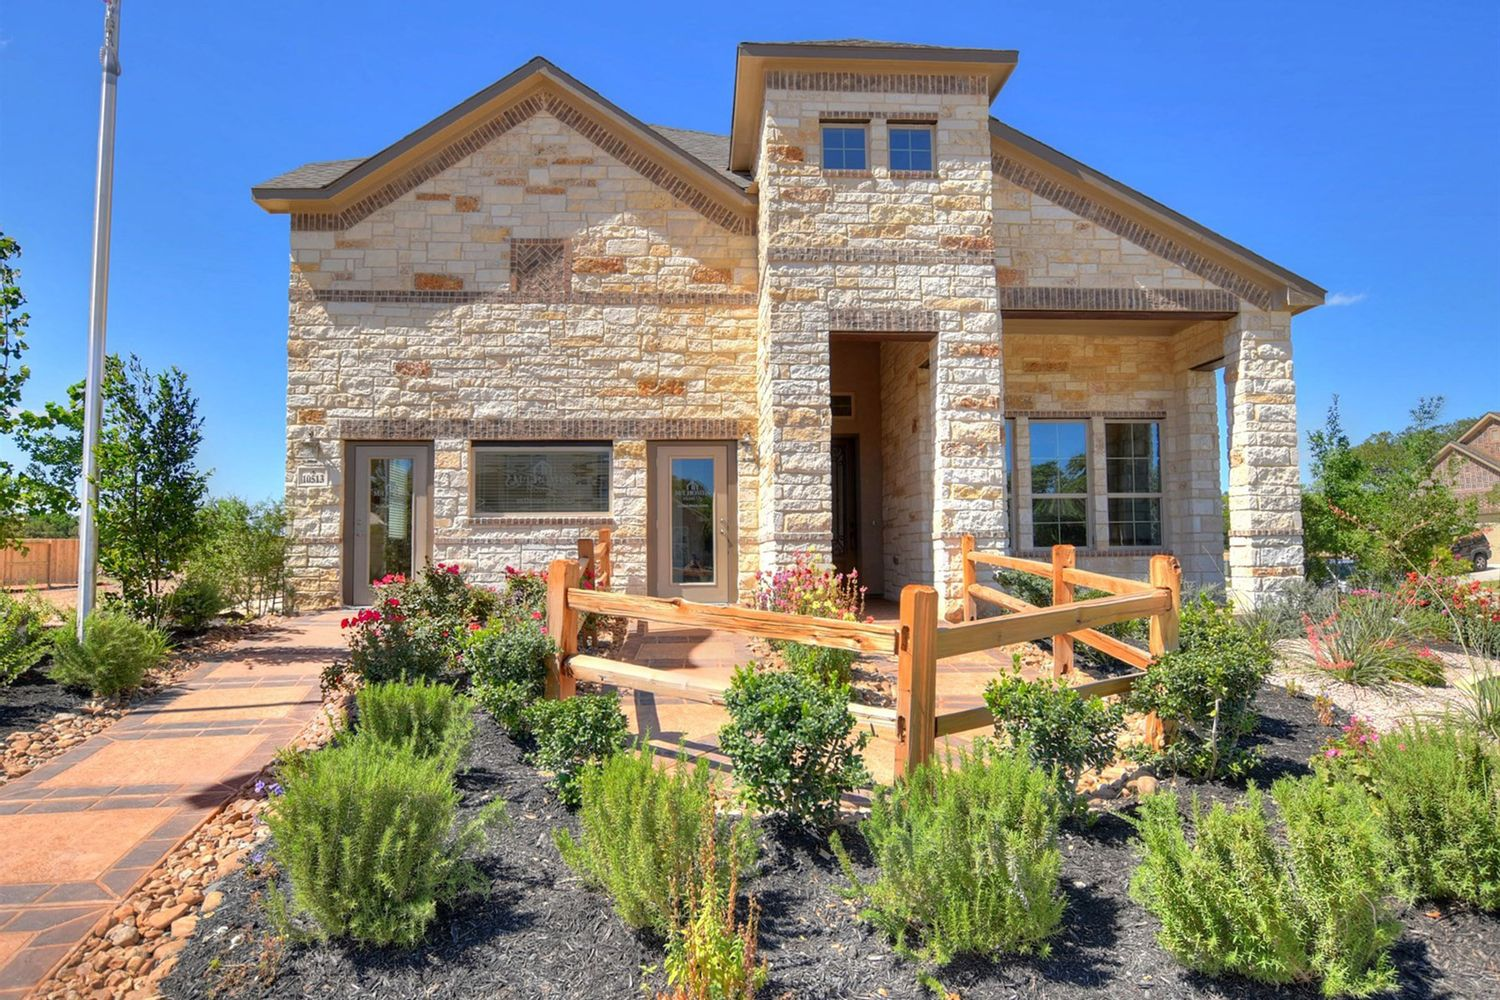 Single Family for Sale at Rosewood 15734 La Subida Trail Helotes, Texas 78023 United States